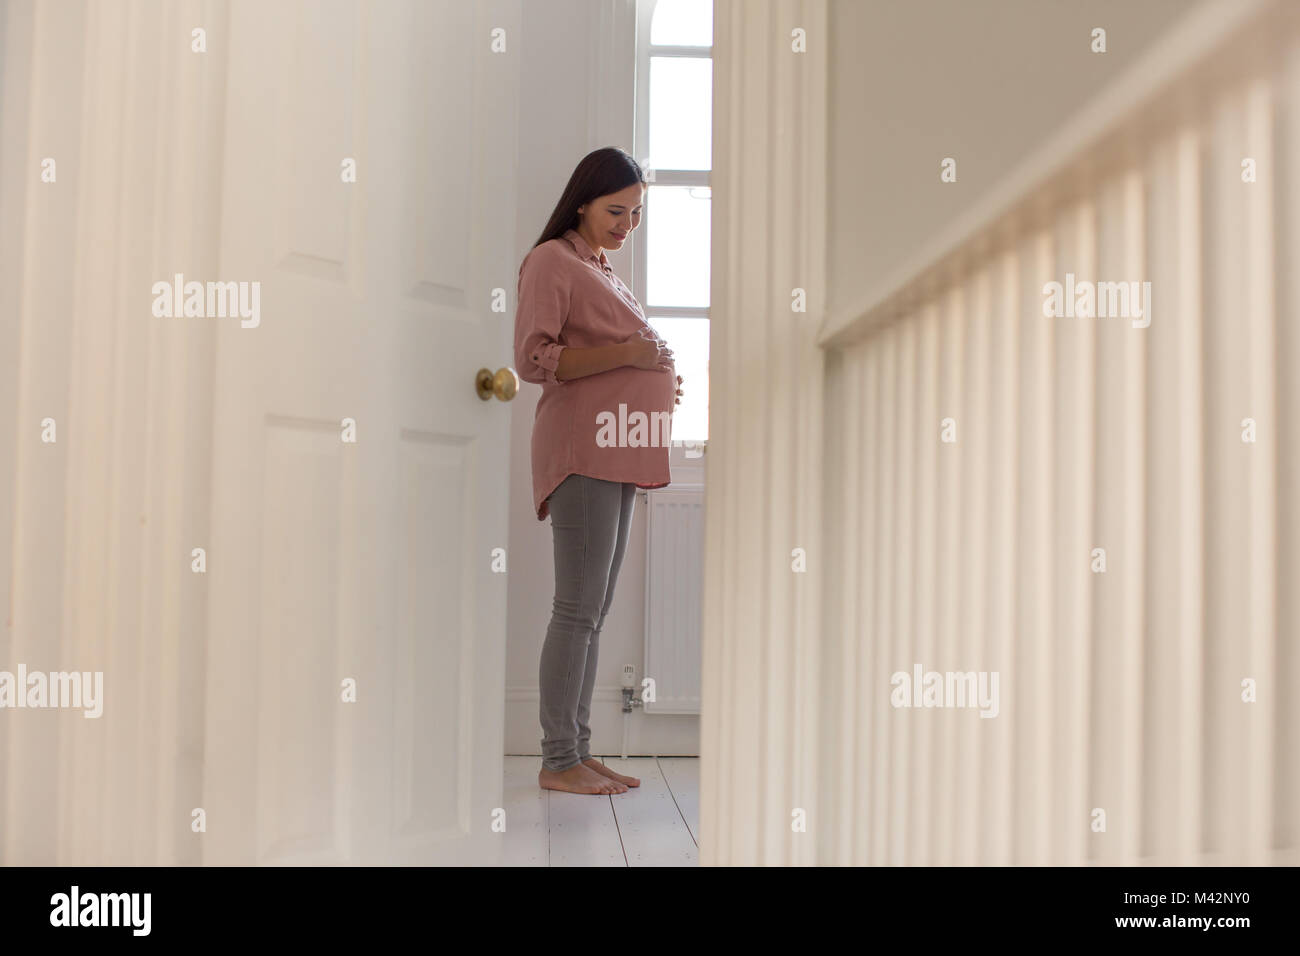 Pregnant woman standing in nursery room - Stock Image